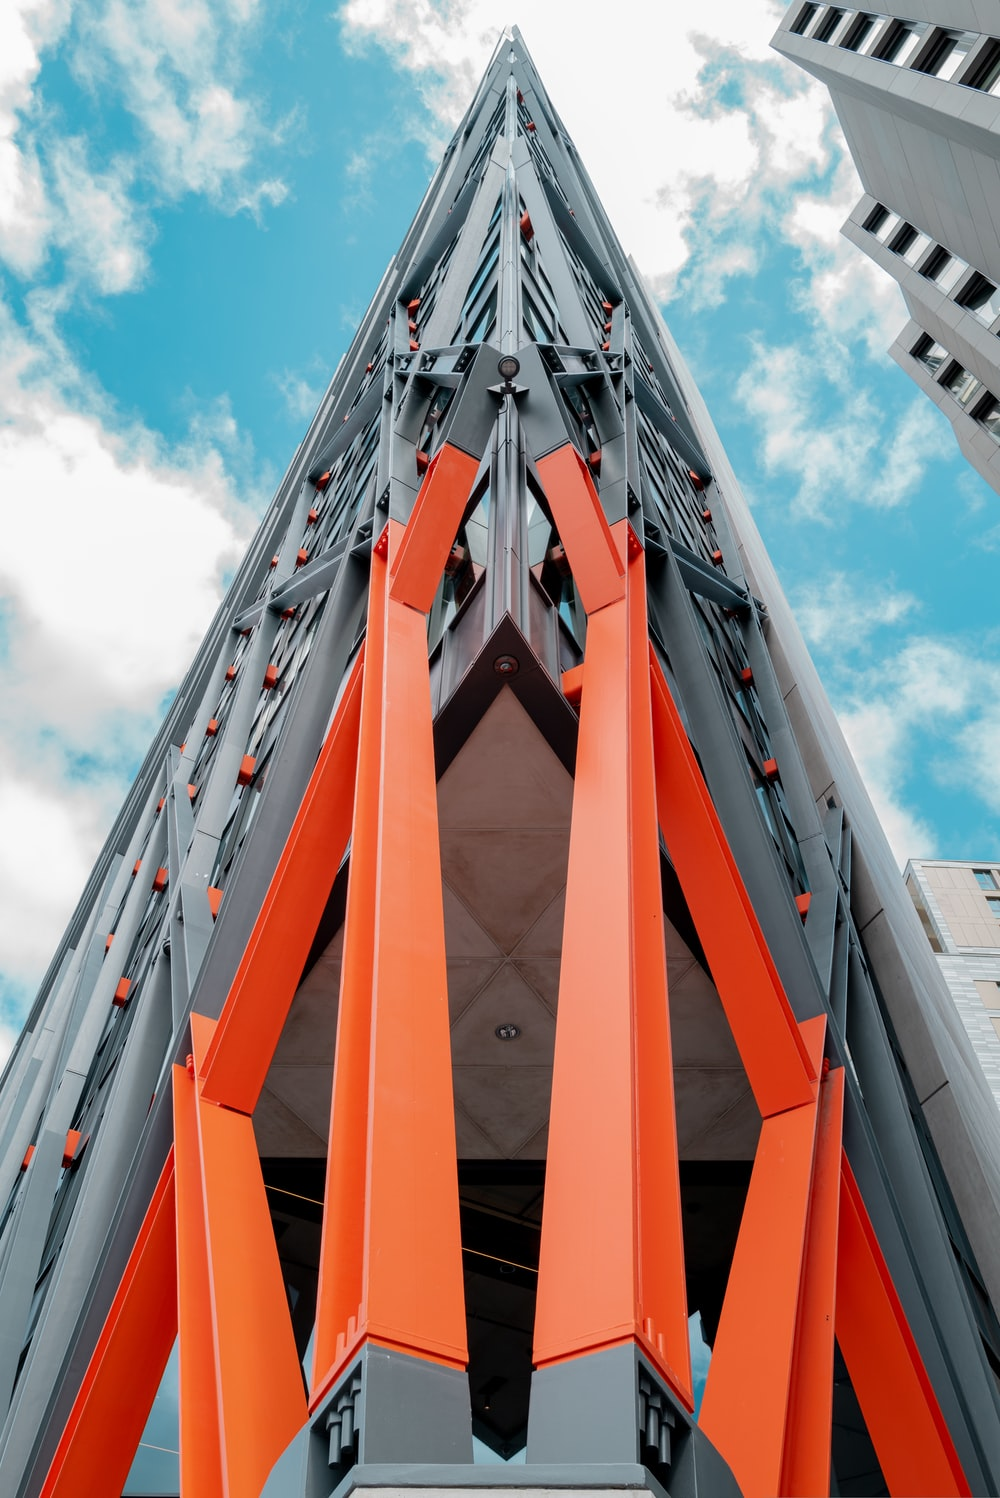 orange and gray concrete building under blue sky during daytime